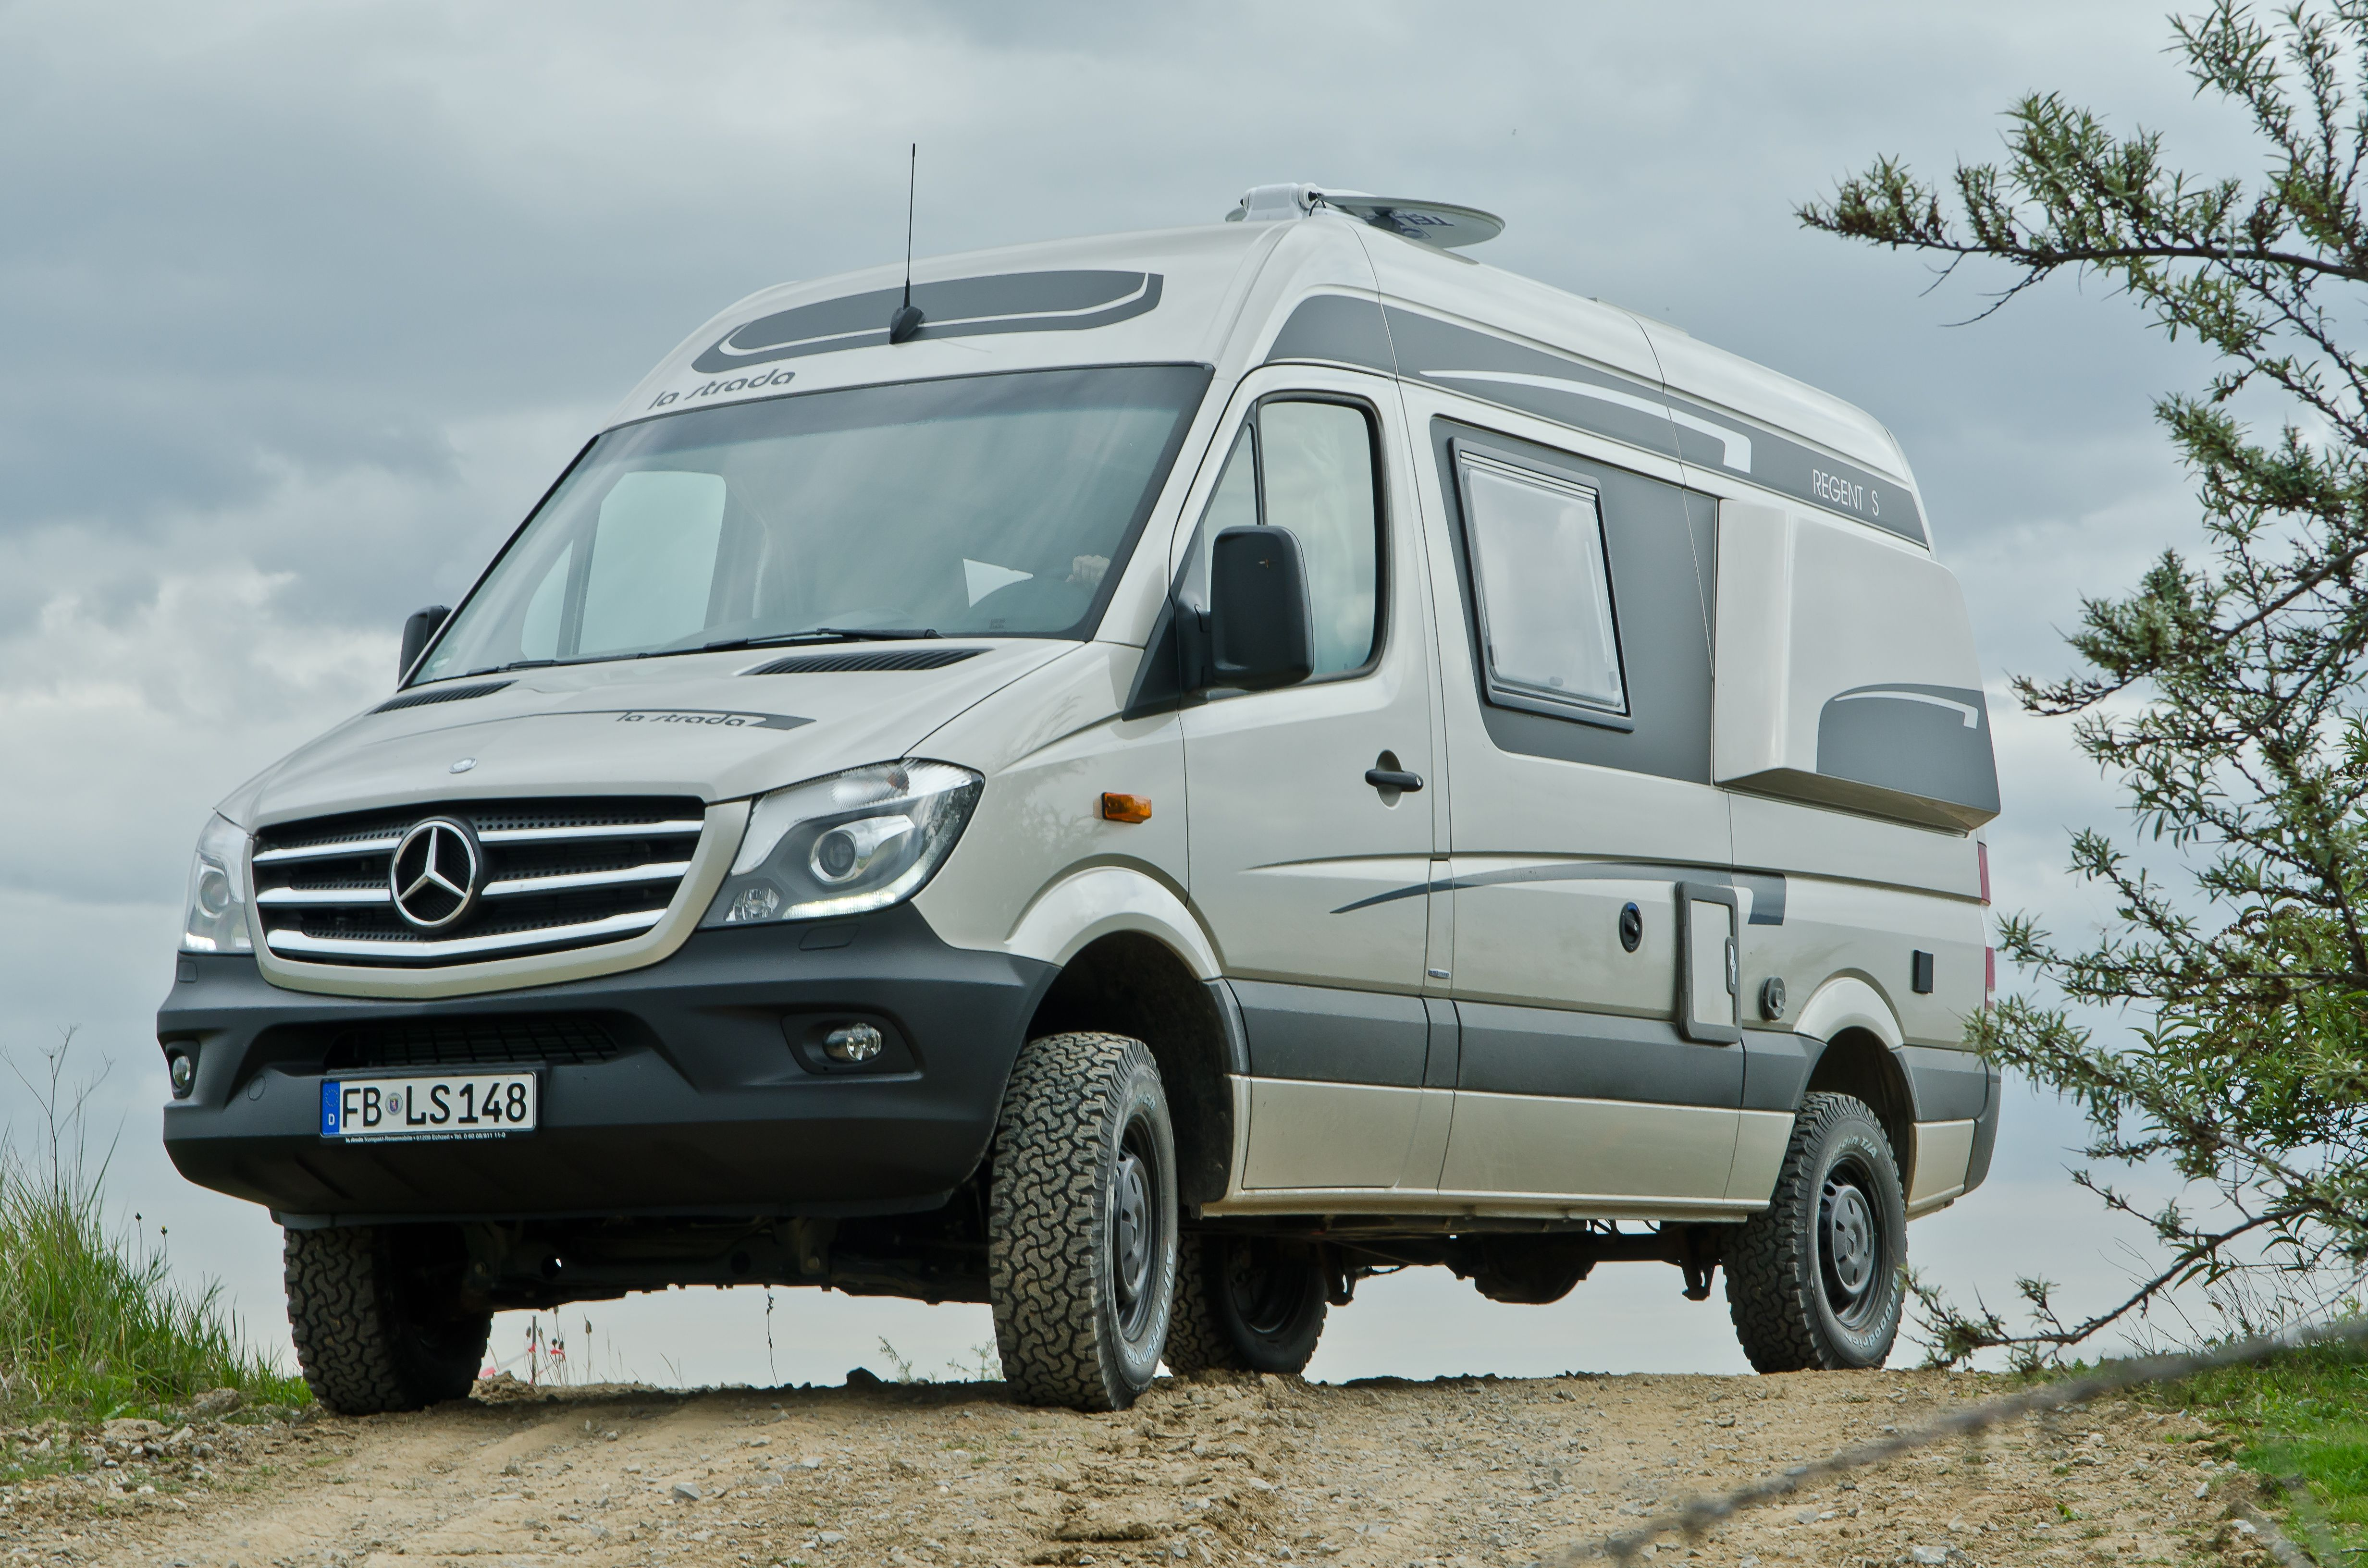 la strada regent s a 4x4 mercedes camper motorhome full time pinterest mercedes. Black Bedroom Furniture Sets. Home Design Ideas